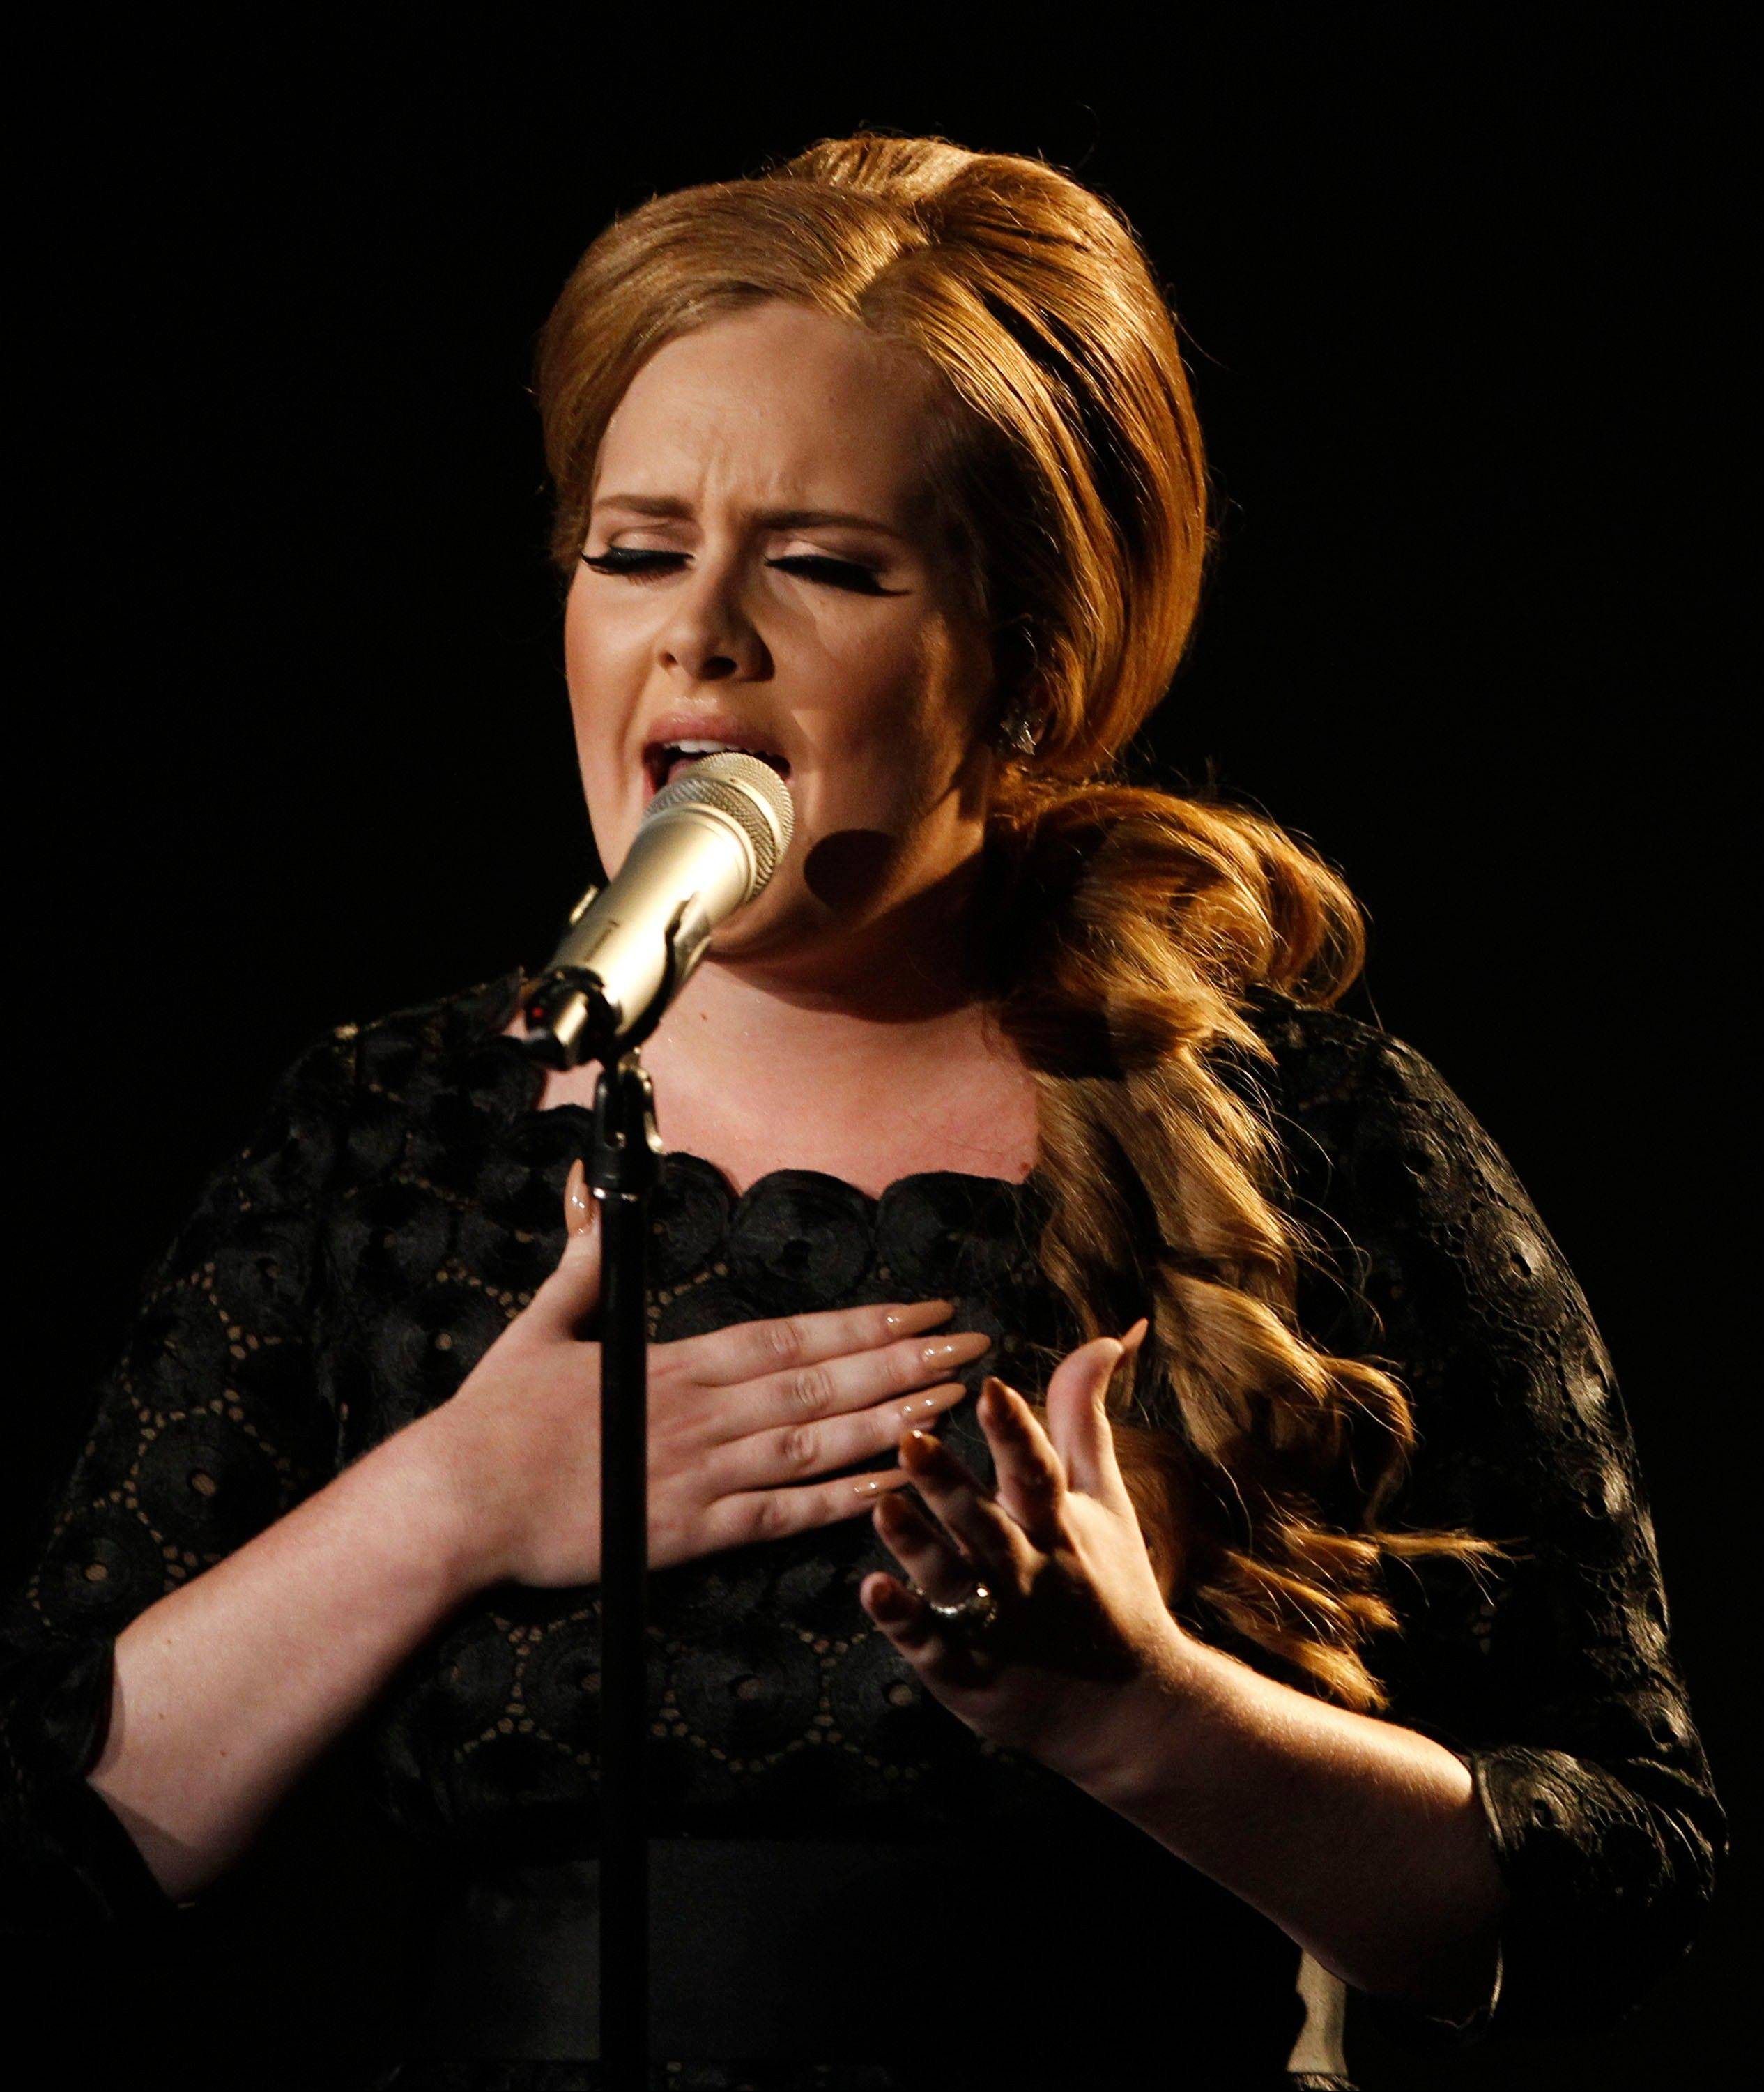 Adele performs at the MTV Video Music Awards on Sunday in Los Angeles.